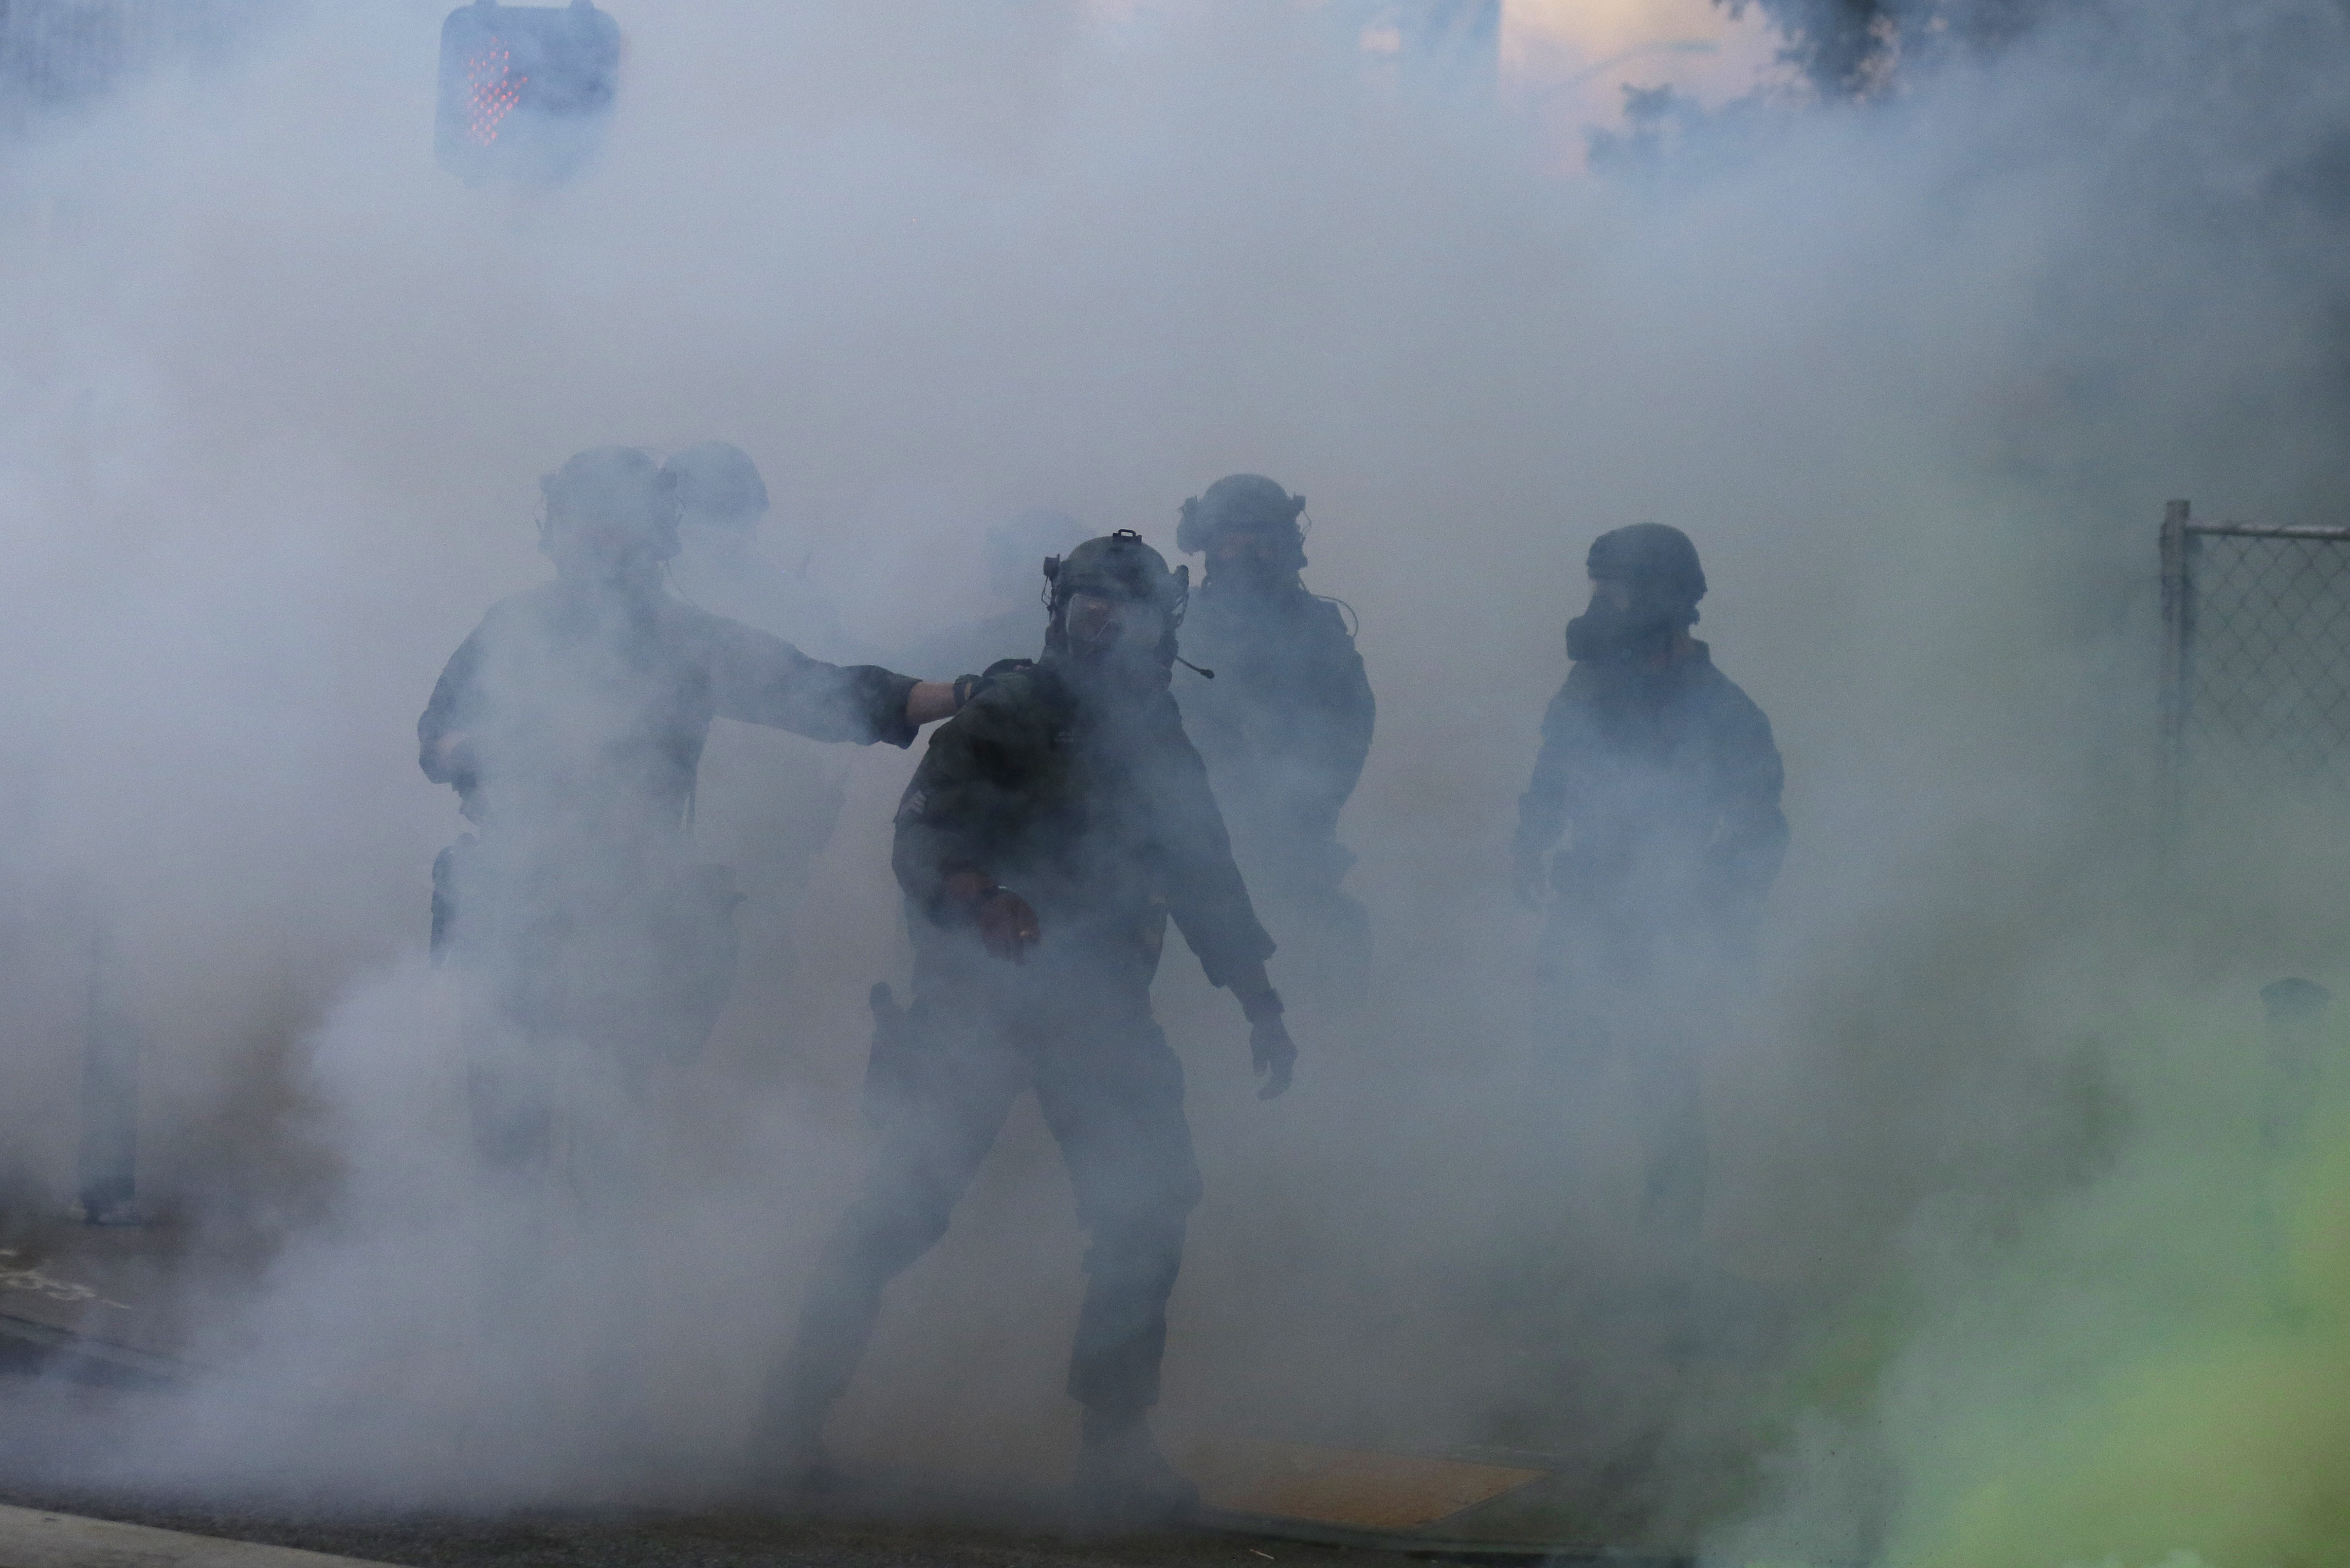 Police move through tear gas as demonstrators march on Sunday in Atlanta.